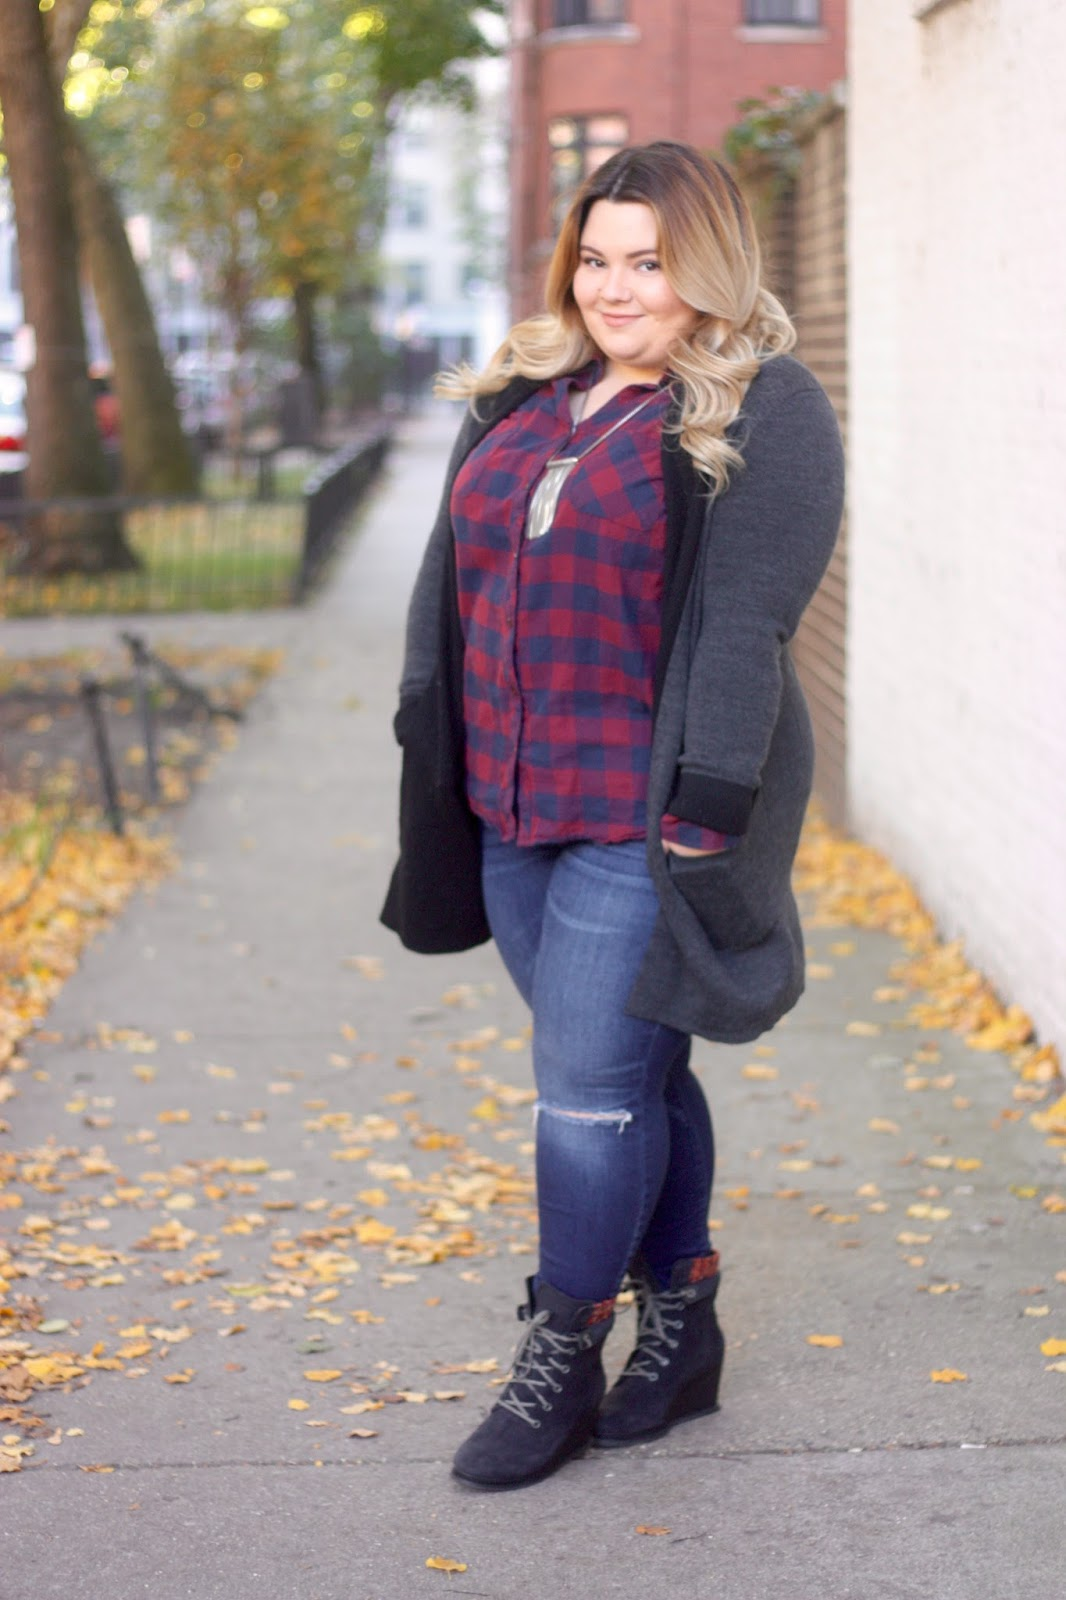 MAKE A SCENE TOUR, Caterpillar footwear, Cat footwear, soho house chicago, natalie craig, chicago blogger, fashion blogger, midwest blogger, influencer, fall boots, ankle boots, how to wear plaid, wedge ankle boots